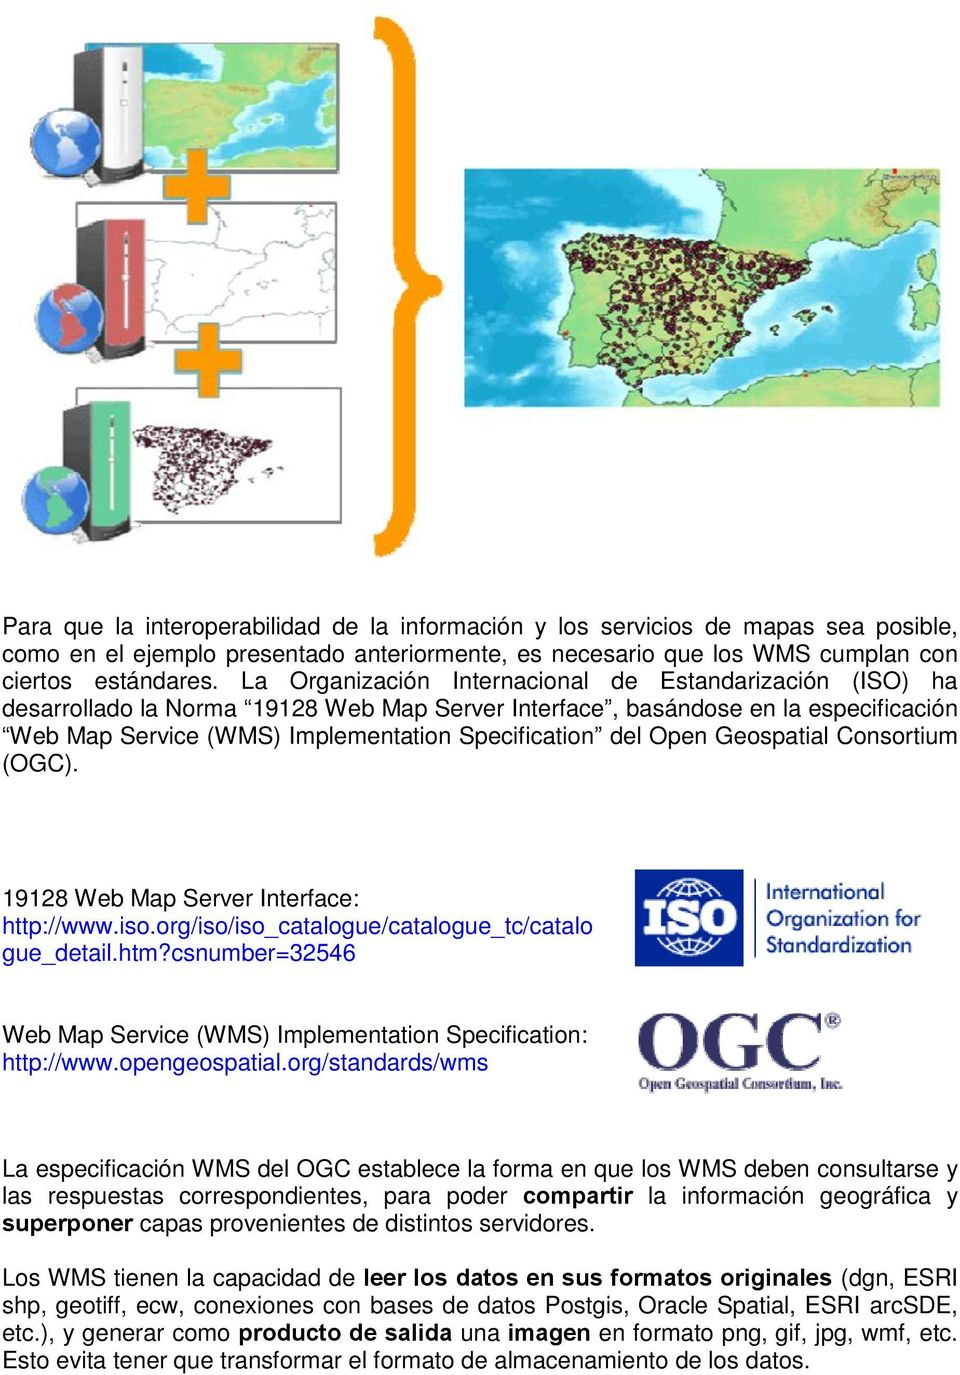 Open Geospatial Consortium (OGC). 19128 Web Map Server Interface: http://www.iso.org/iso/iso_catalogue/catalogue_tc/catalo gue_detail.htm?